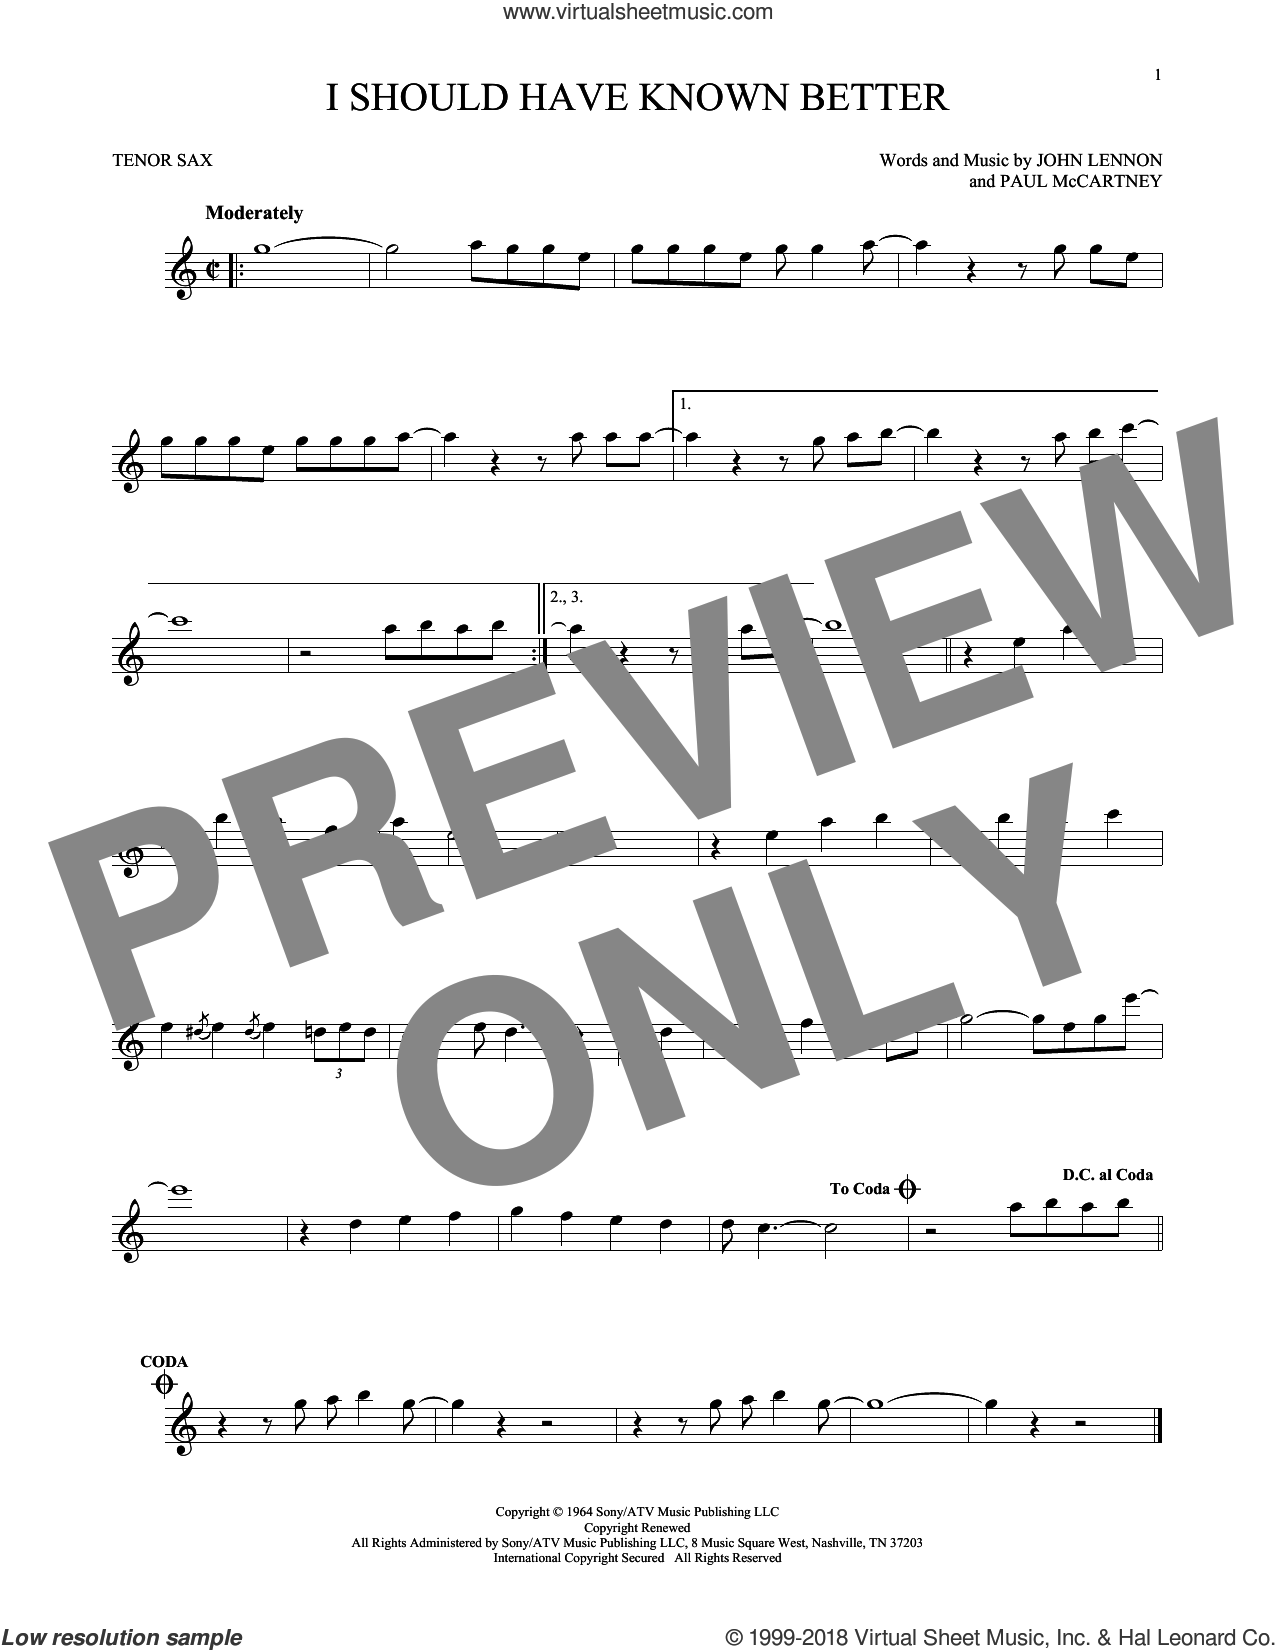 I Should Have Known Better sheet music for tenor saxophone solo by Paul McCartney, The Beatles and John Lennon. Score Image Preview.